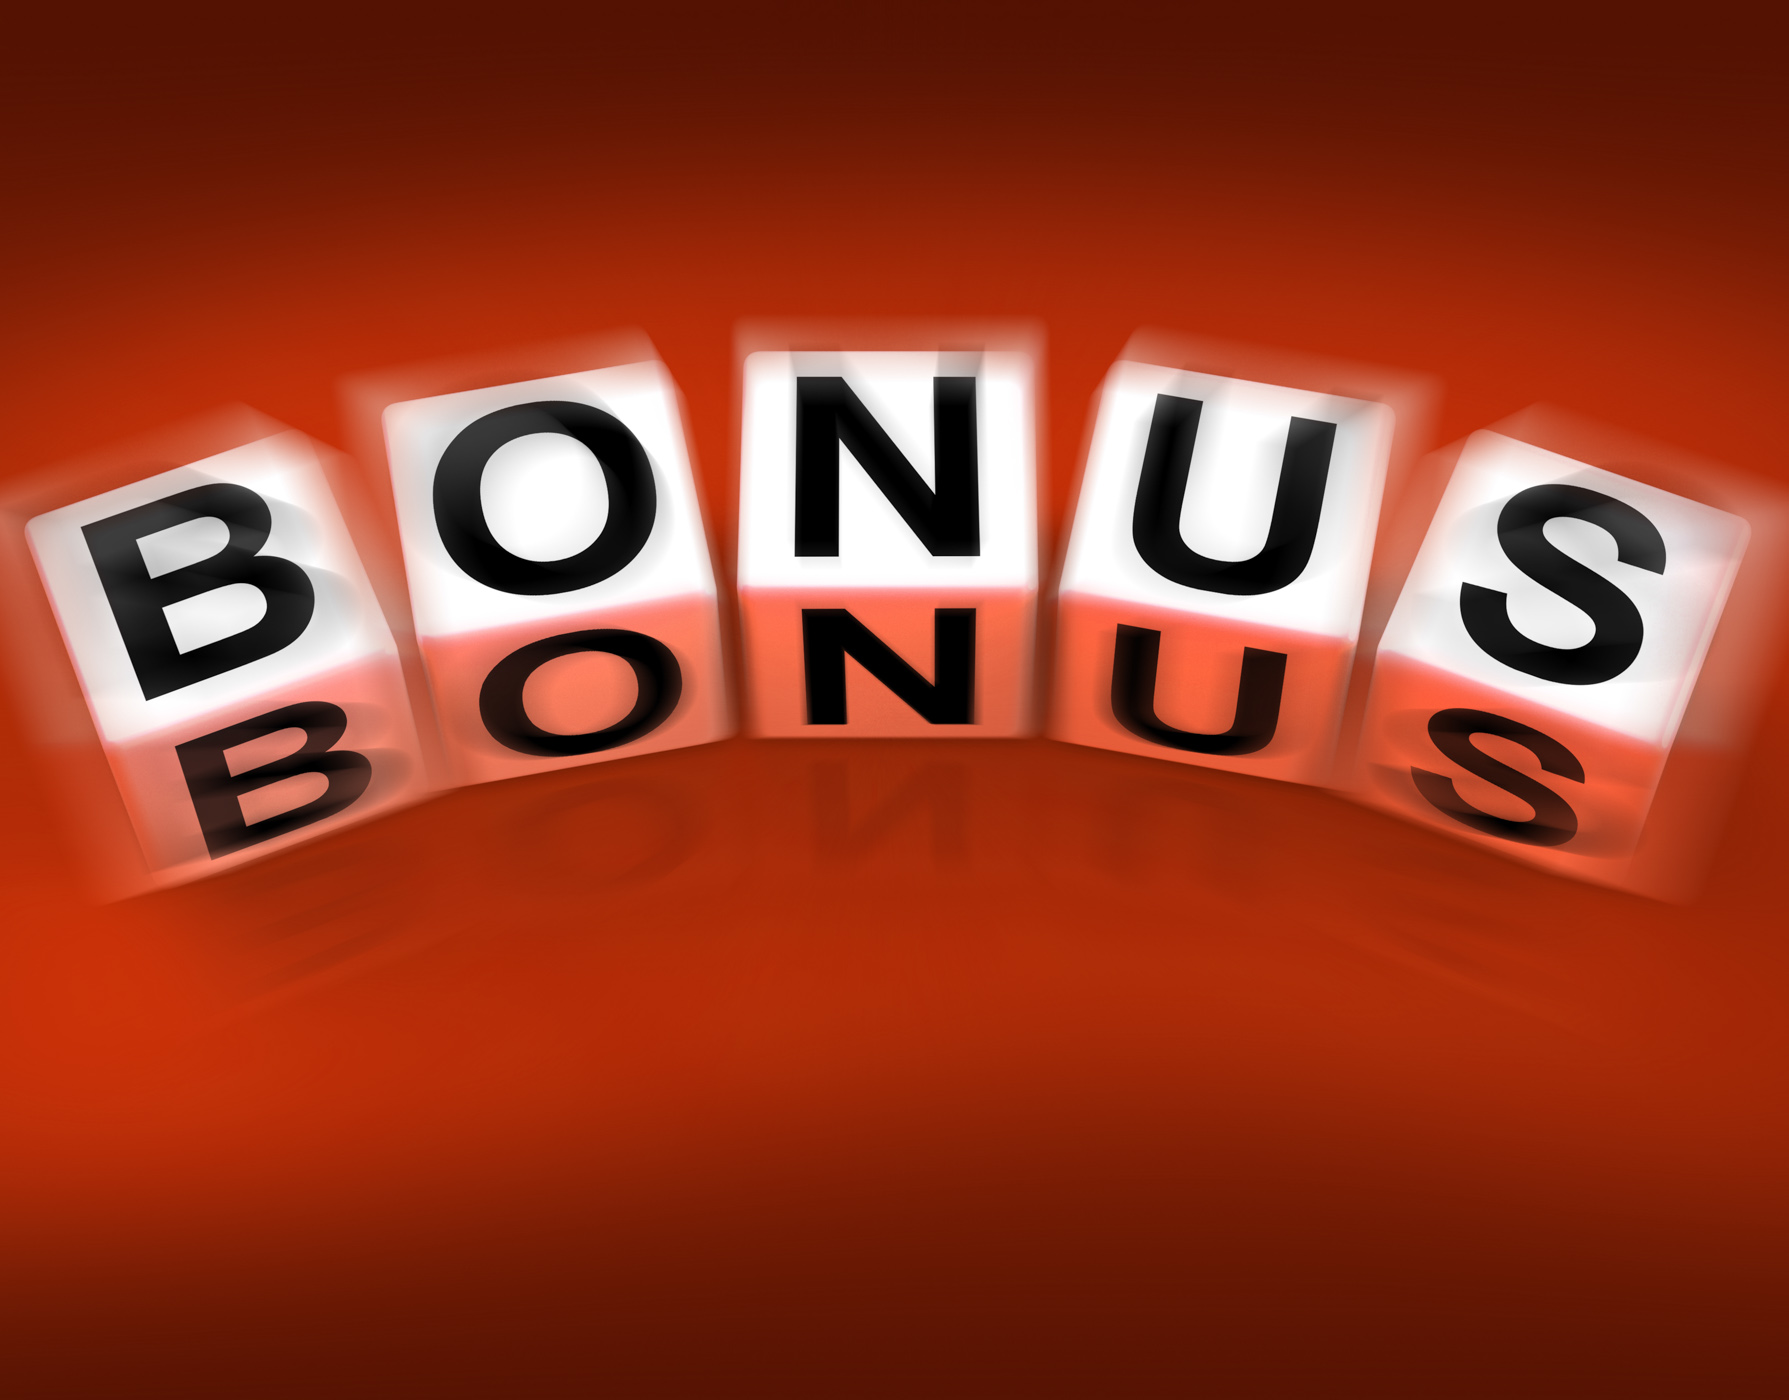 Bonus Blocks Displays Promotional Gratuity Benefits and Bonuses, gratuity, gratis, perk, prize, HQ Photo